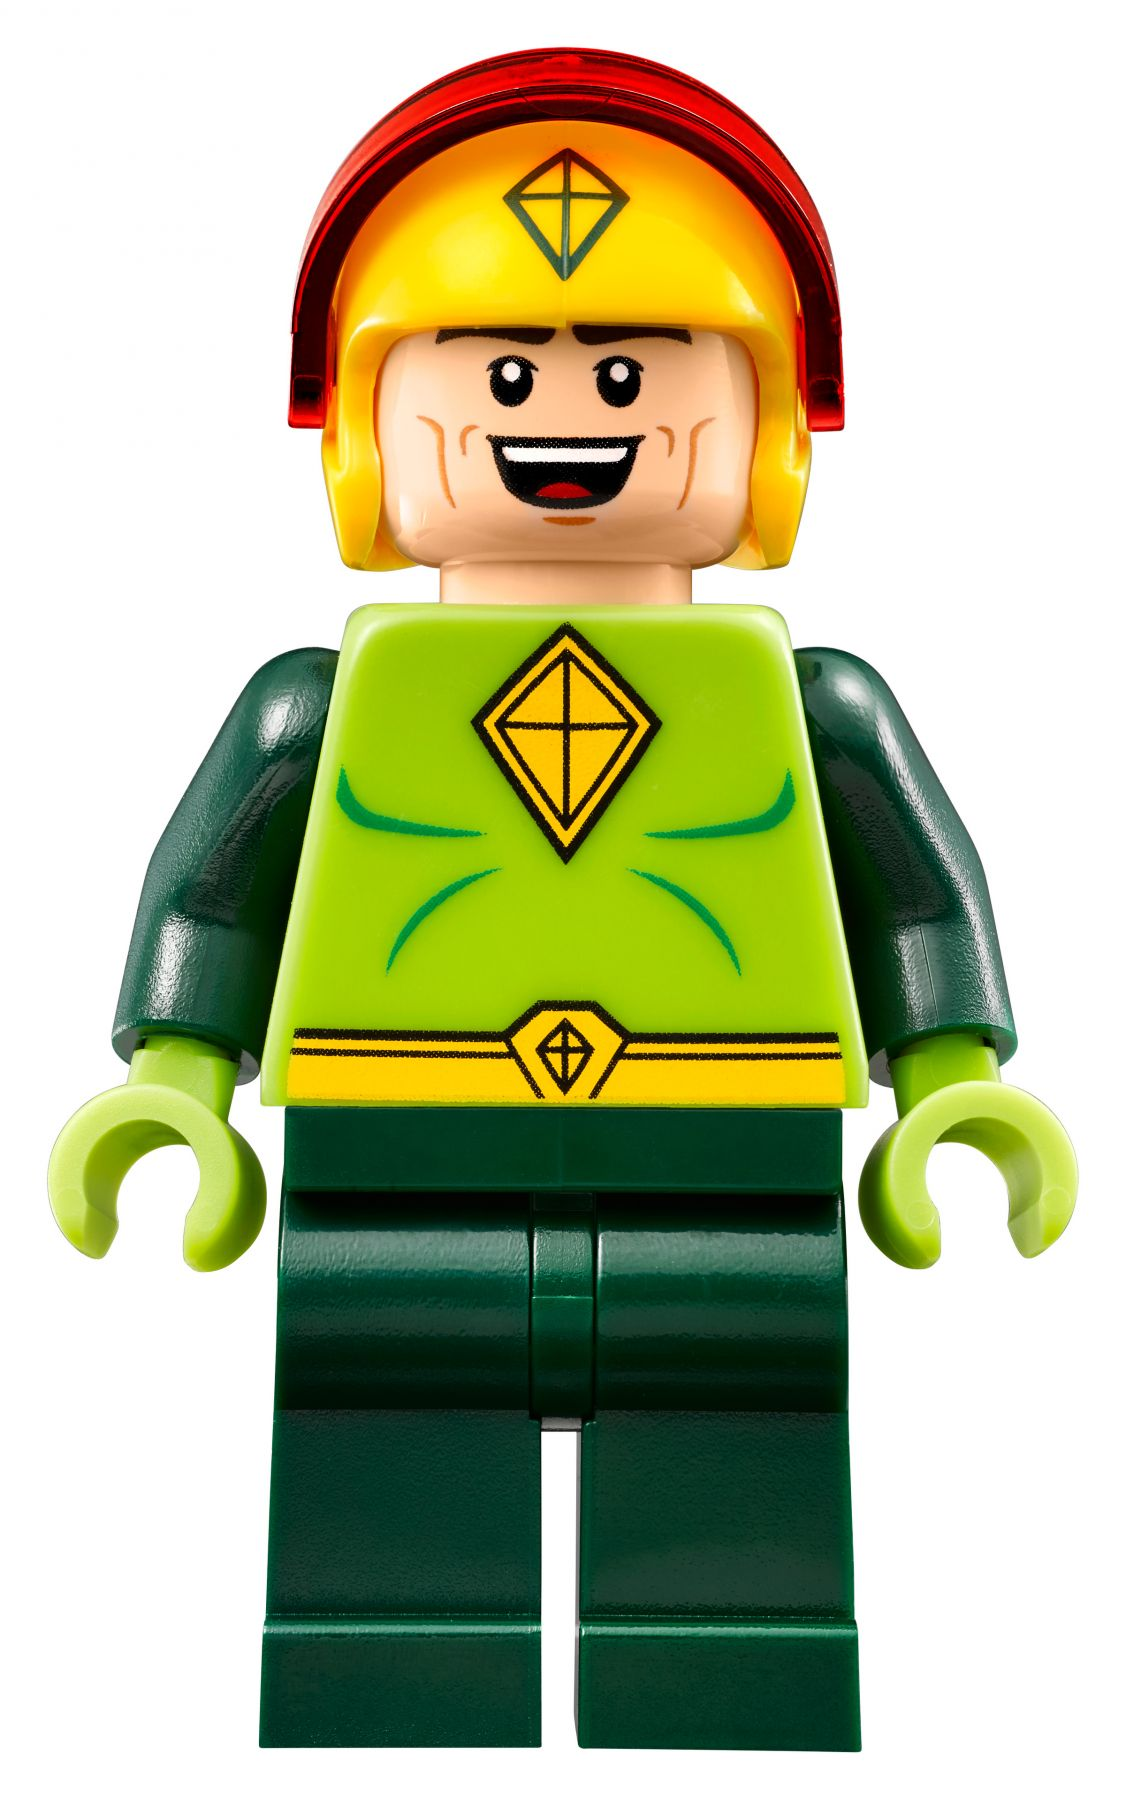 LEGO The LEGO Batman Movie 70903 The Riddler™: Riddle Racer LEGO_70903_alt9.jpg